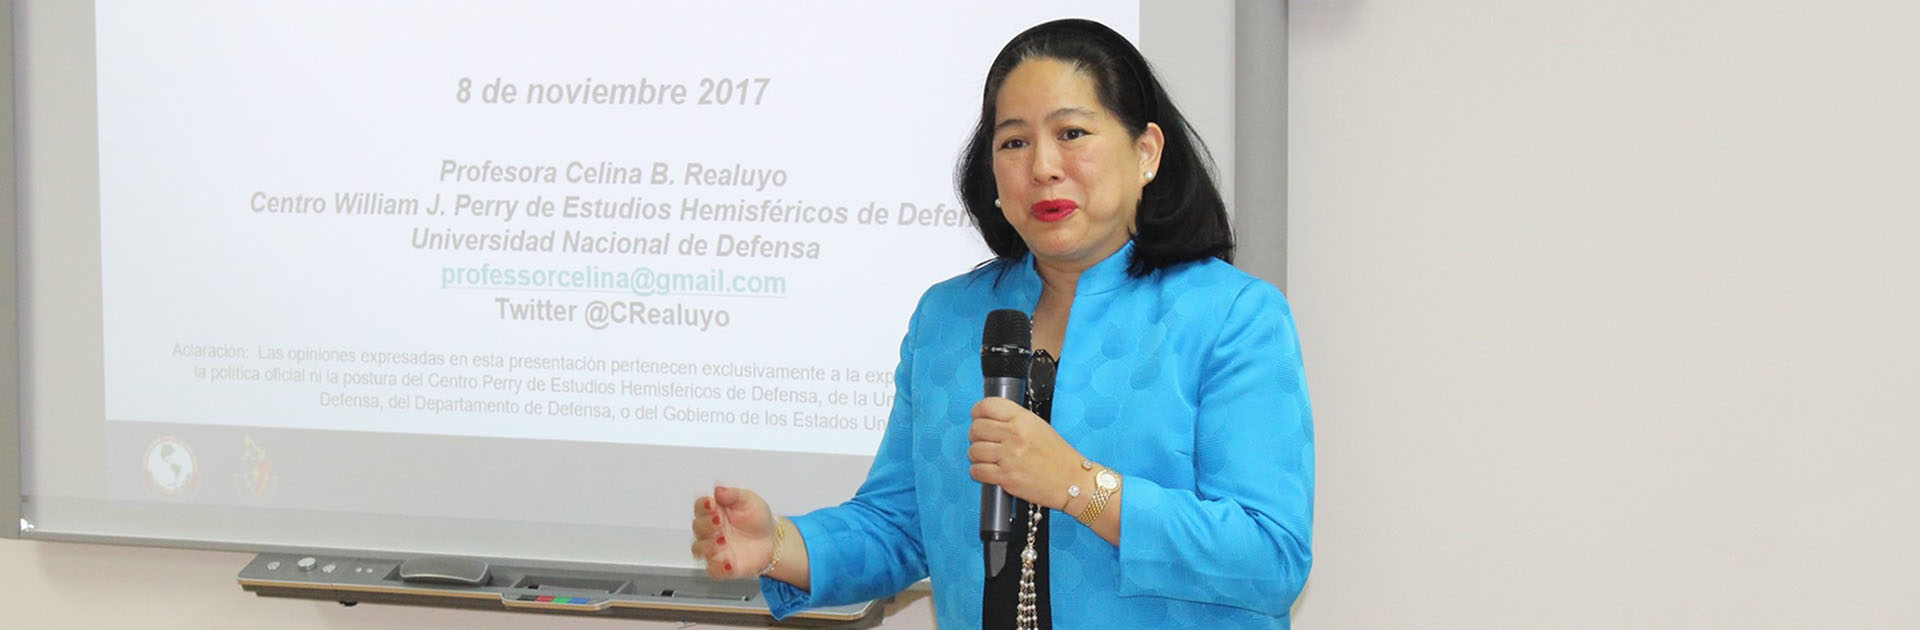 Professor Celina Realuyo Presenting at the US Embassy in Panama